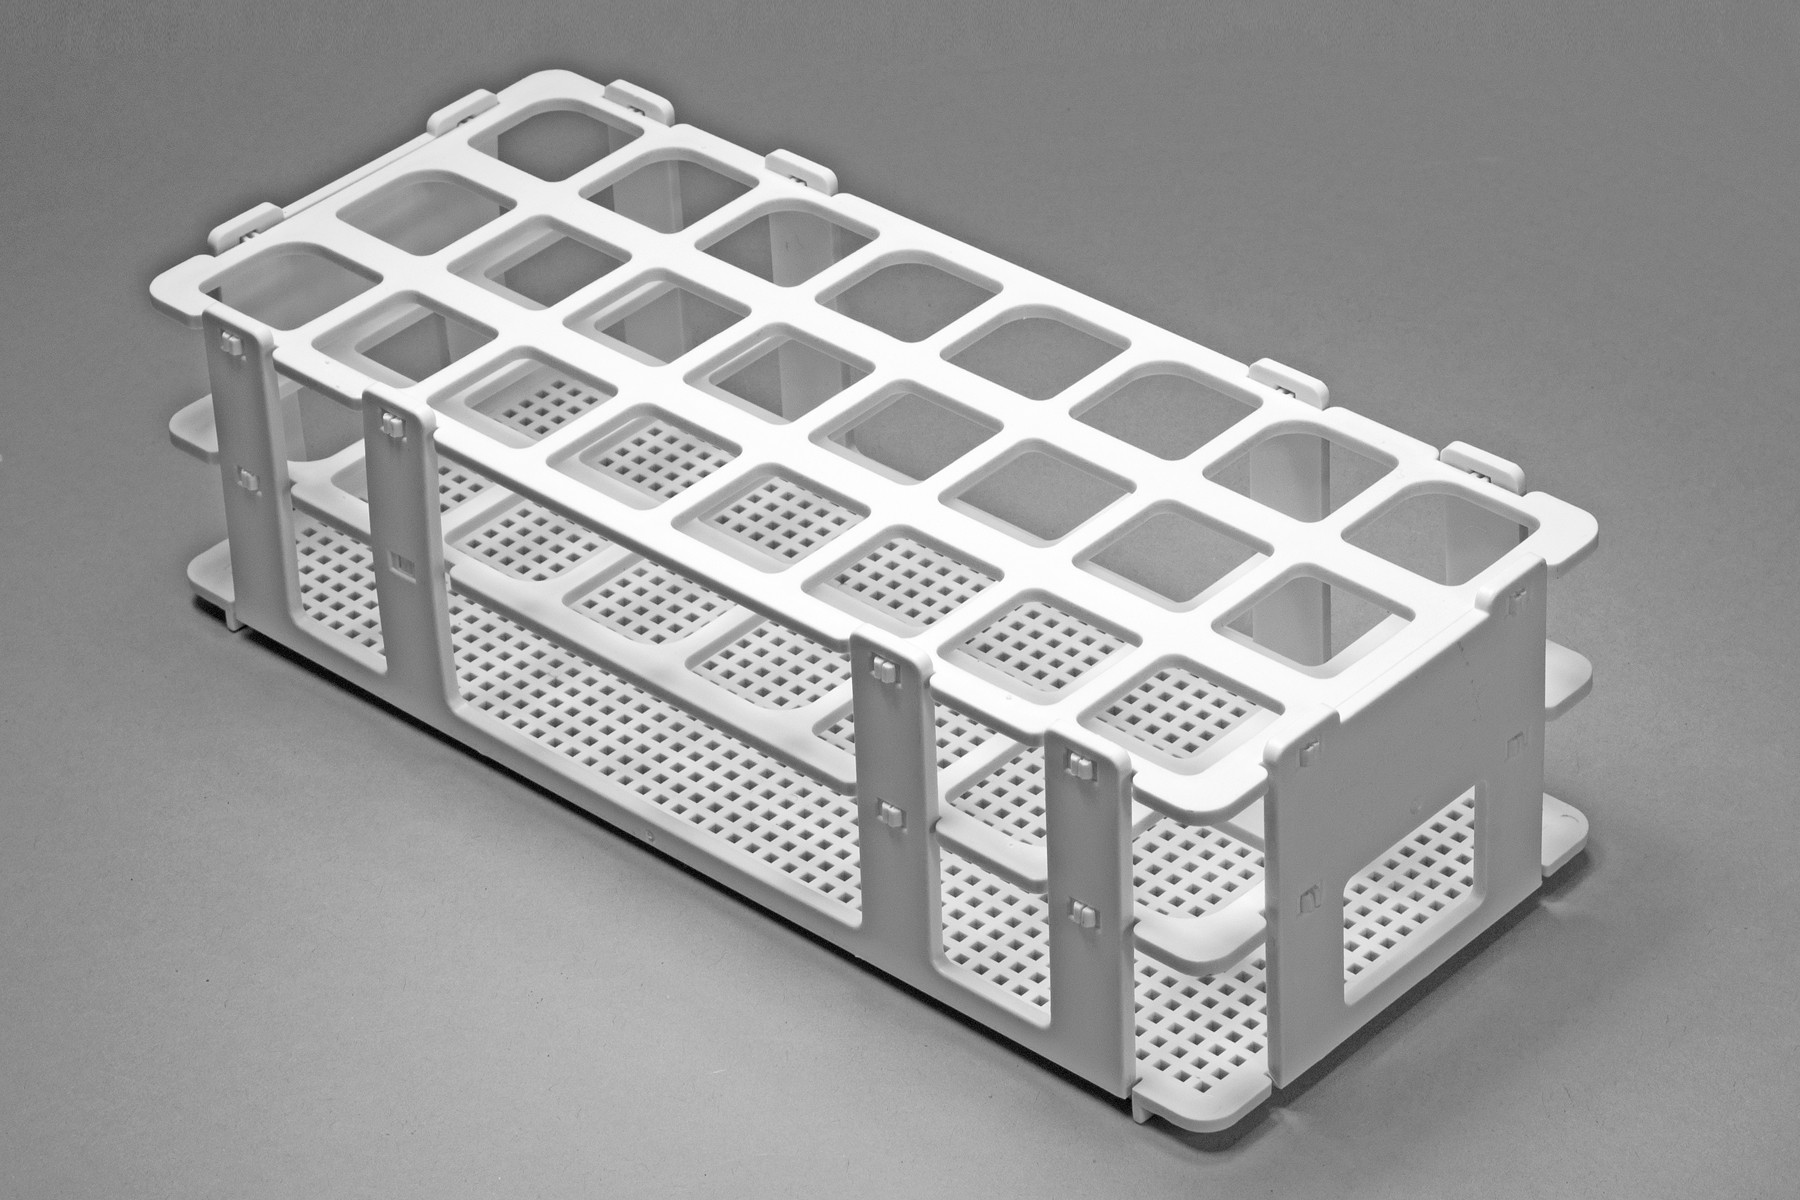 Bel-Art No-Wire Test Tube Rack; For 20-25mm Tubes, 24 Places ... on black white black, black white cube, black white pin, black white washer, black white tools, black white panel, black white bowl, black white oval, black white pail, black white movies, black white drum, black white seal, black white anime, black white window, black white nut, black white cap, black white toy,